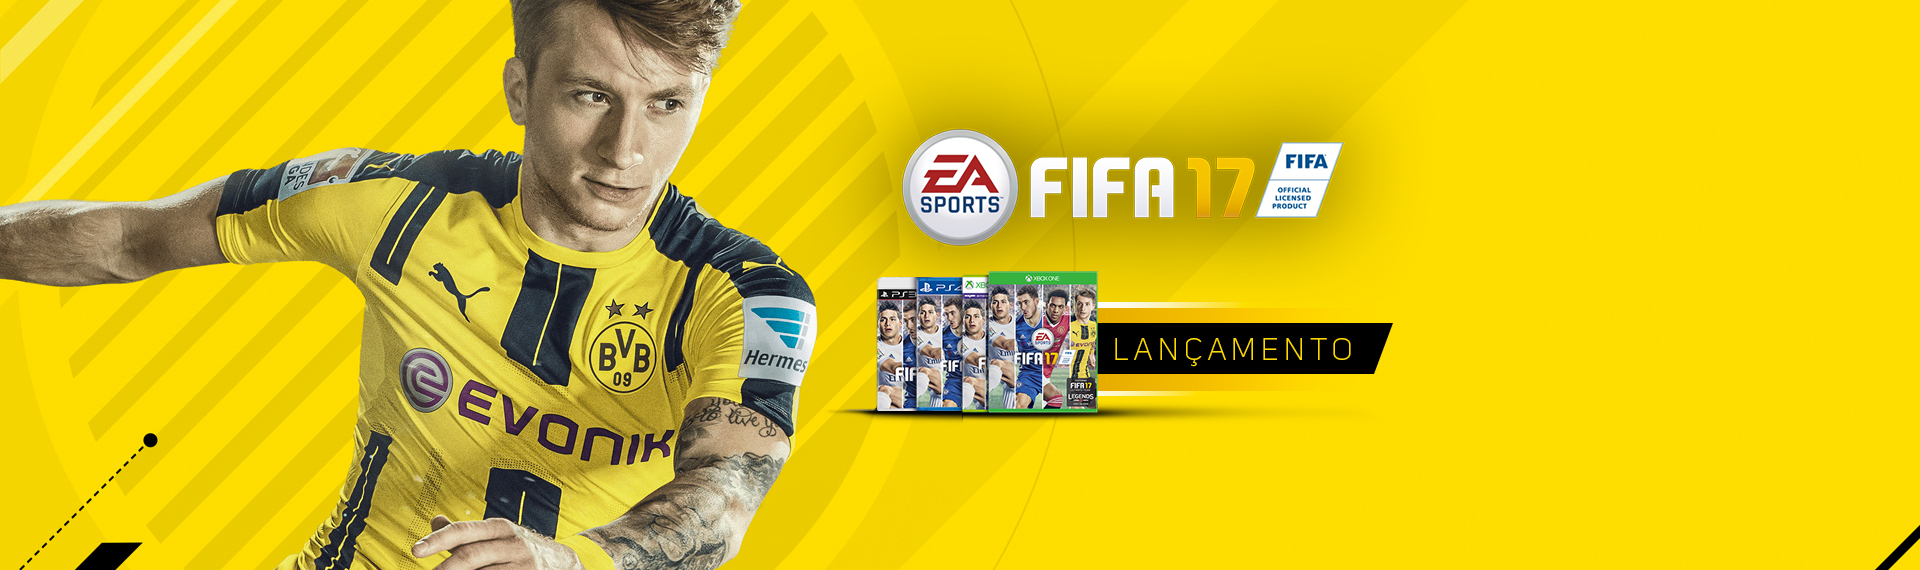 Banner HOme FIFA17